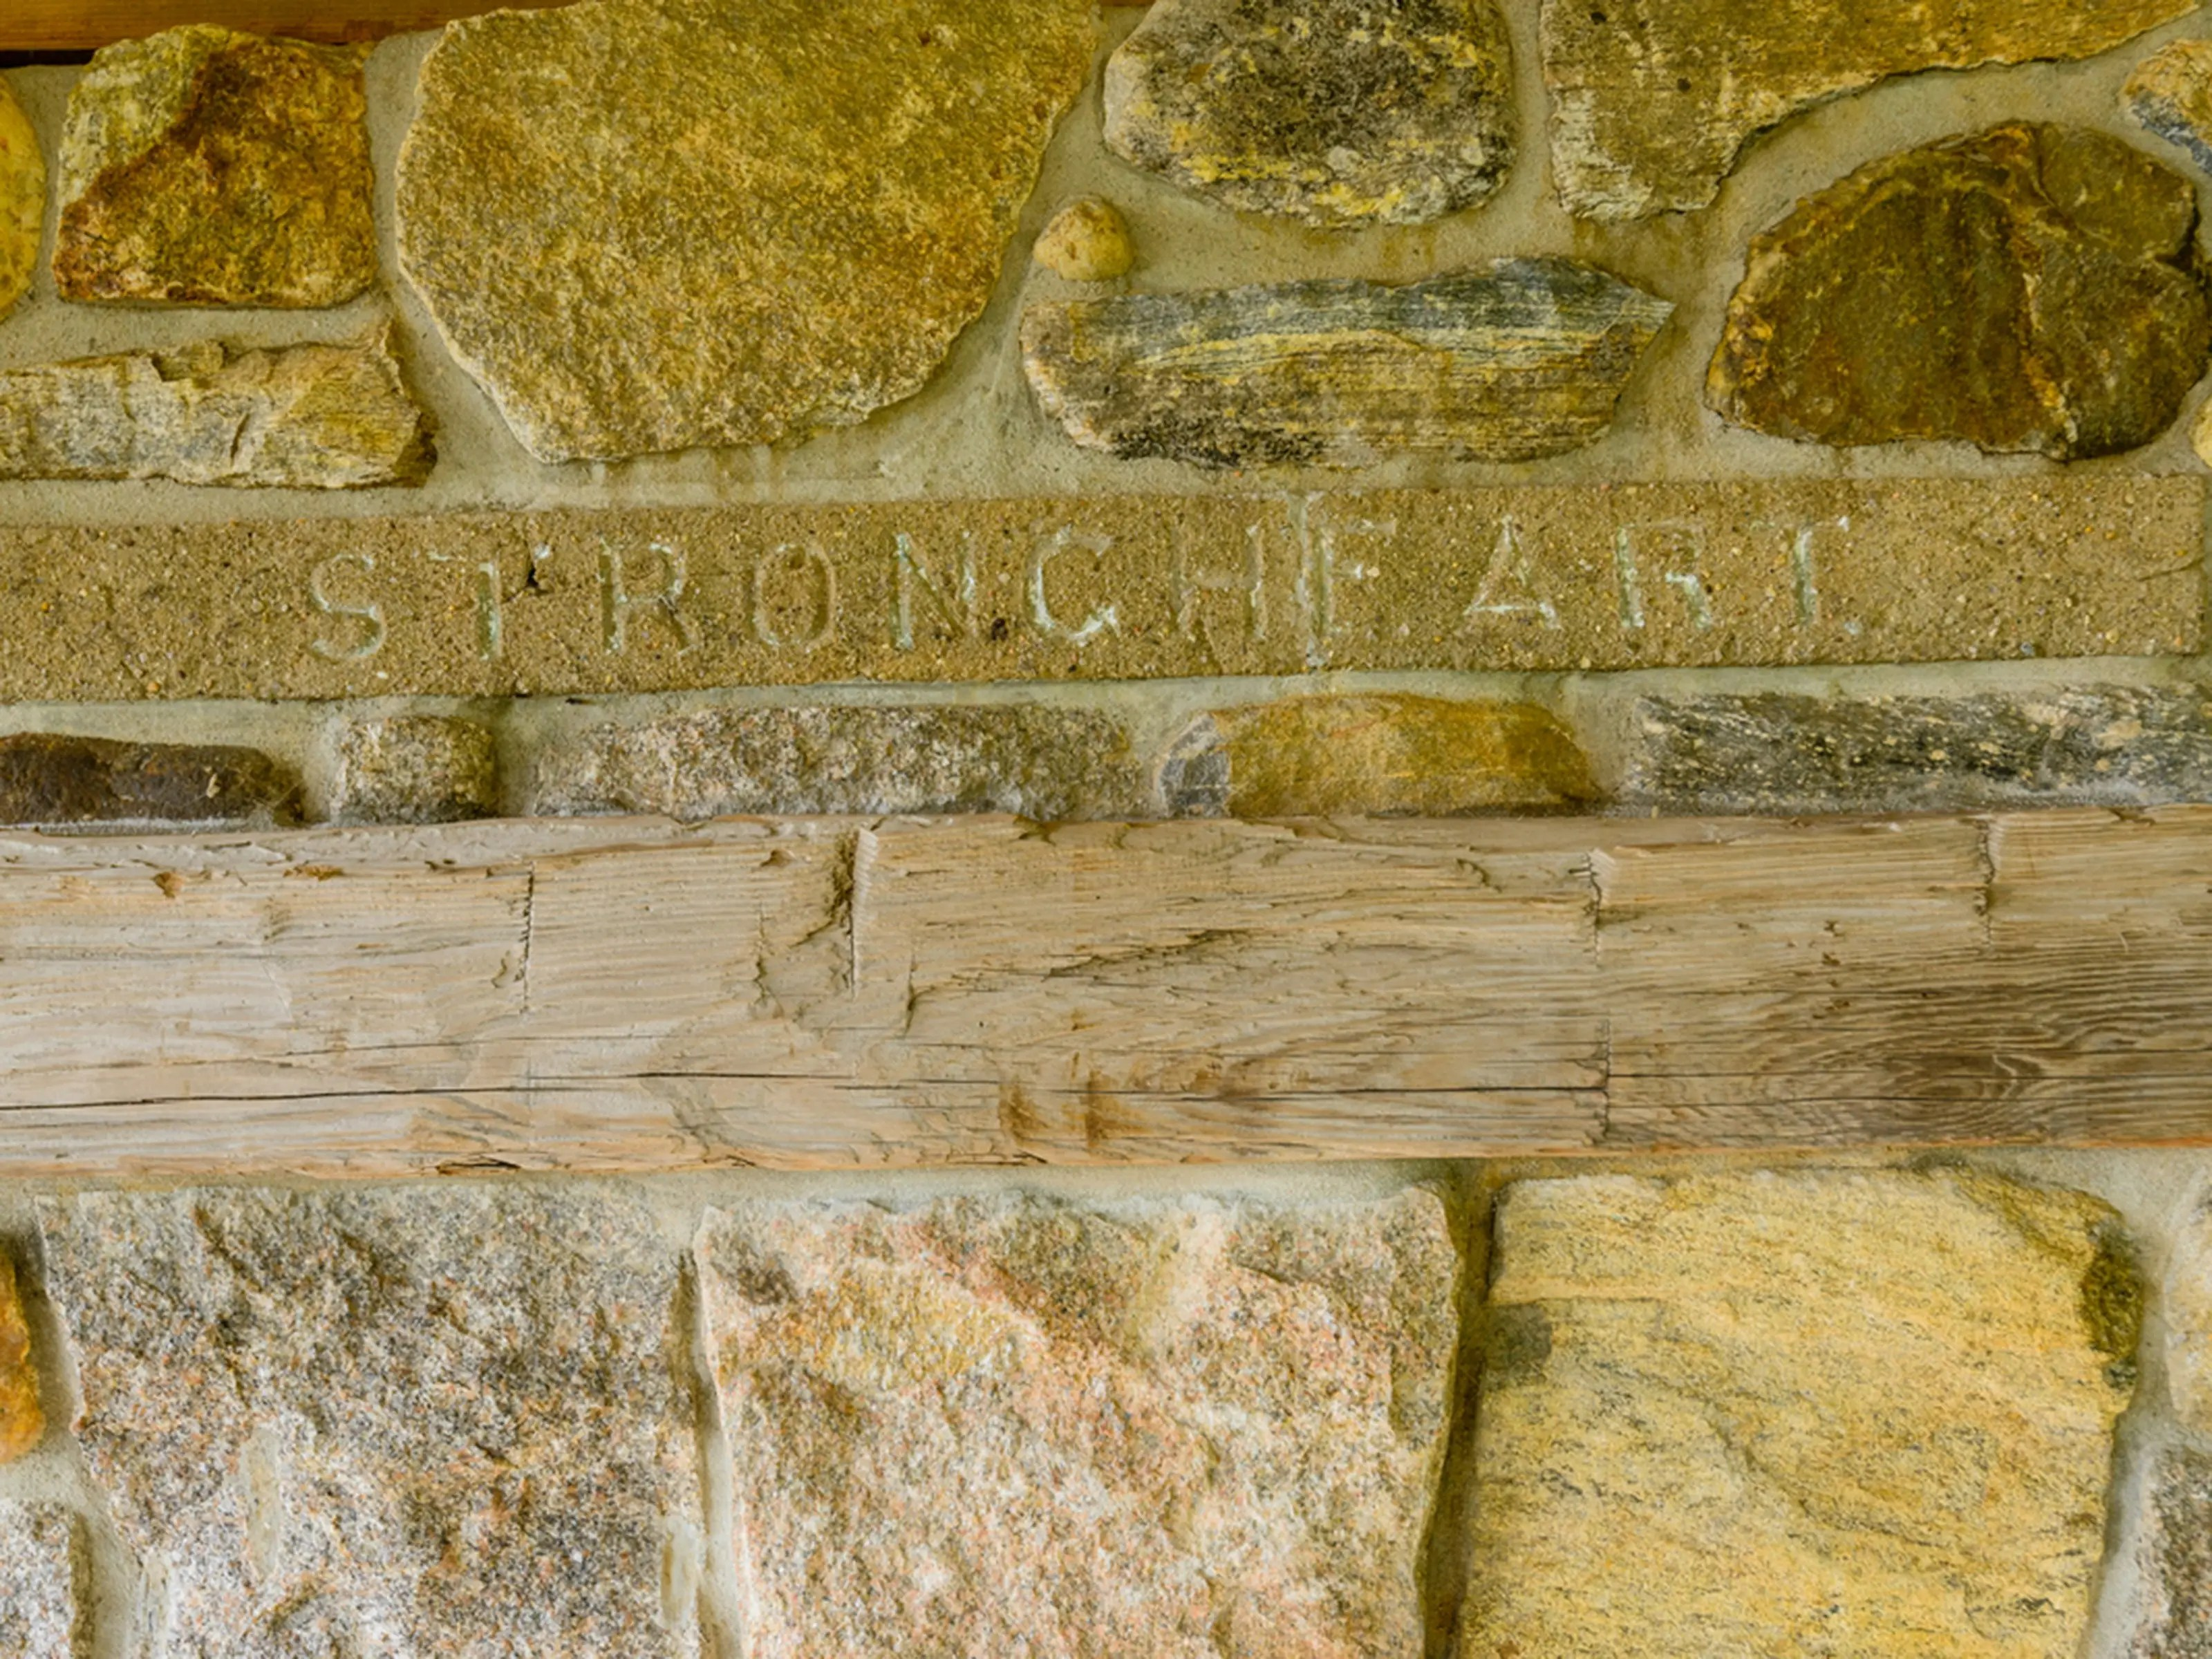 Where the property's name is engraved in the stone.